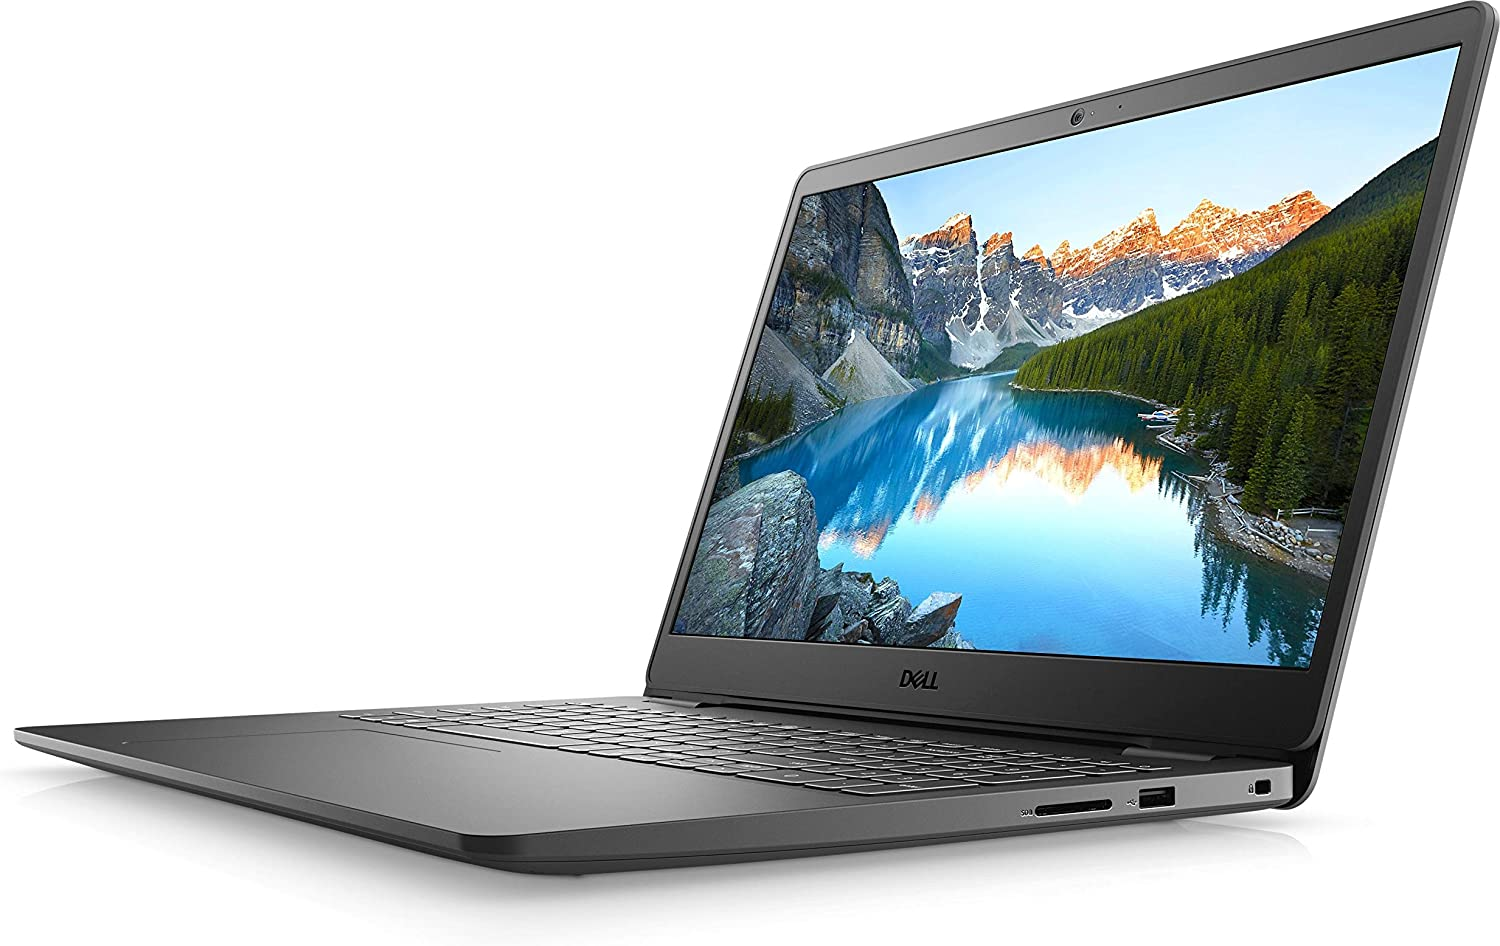 Dell Inspiron 3501 Laptop 11th Generation Intel(R) Core(TM) i5-1135G7 8GB, 8Gx1, DDR4 256GB Solid State Drive 15.6-inch FHD (1920 x 1080) Anti-Glare LED Backlight Non-Touch Display